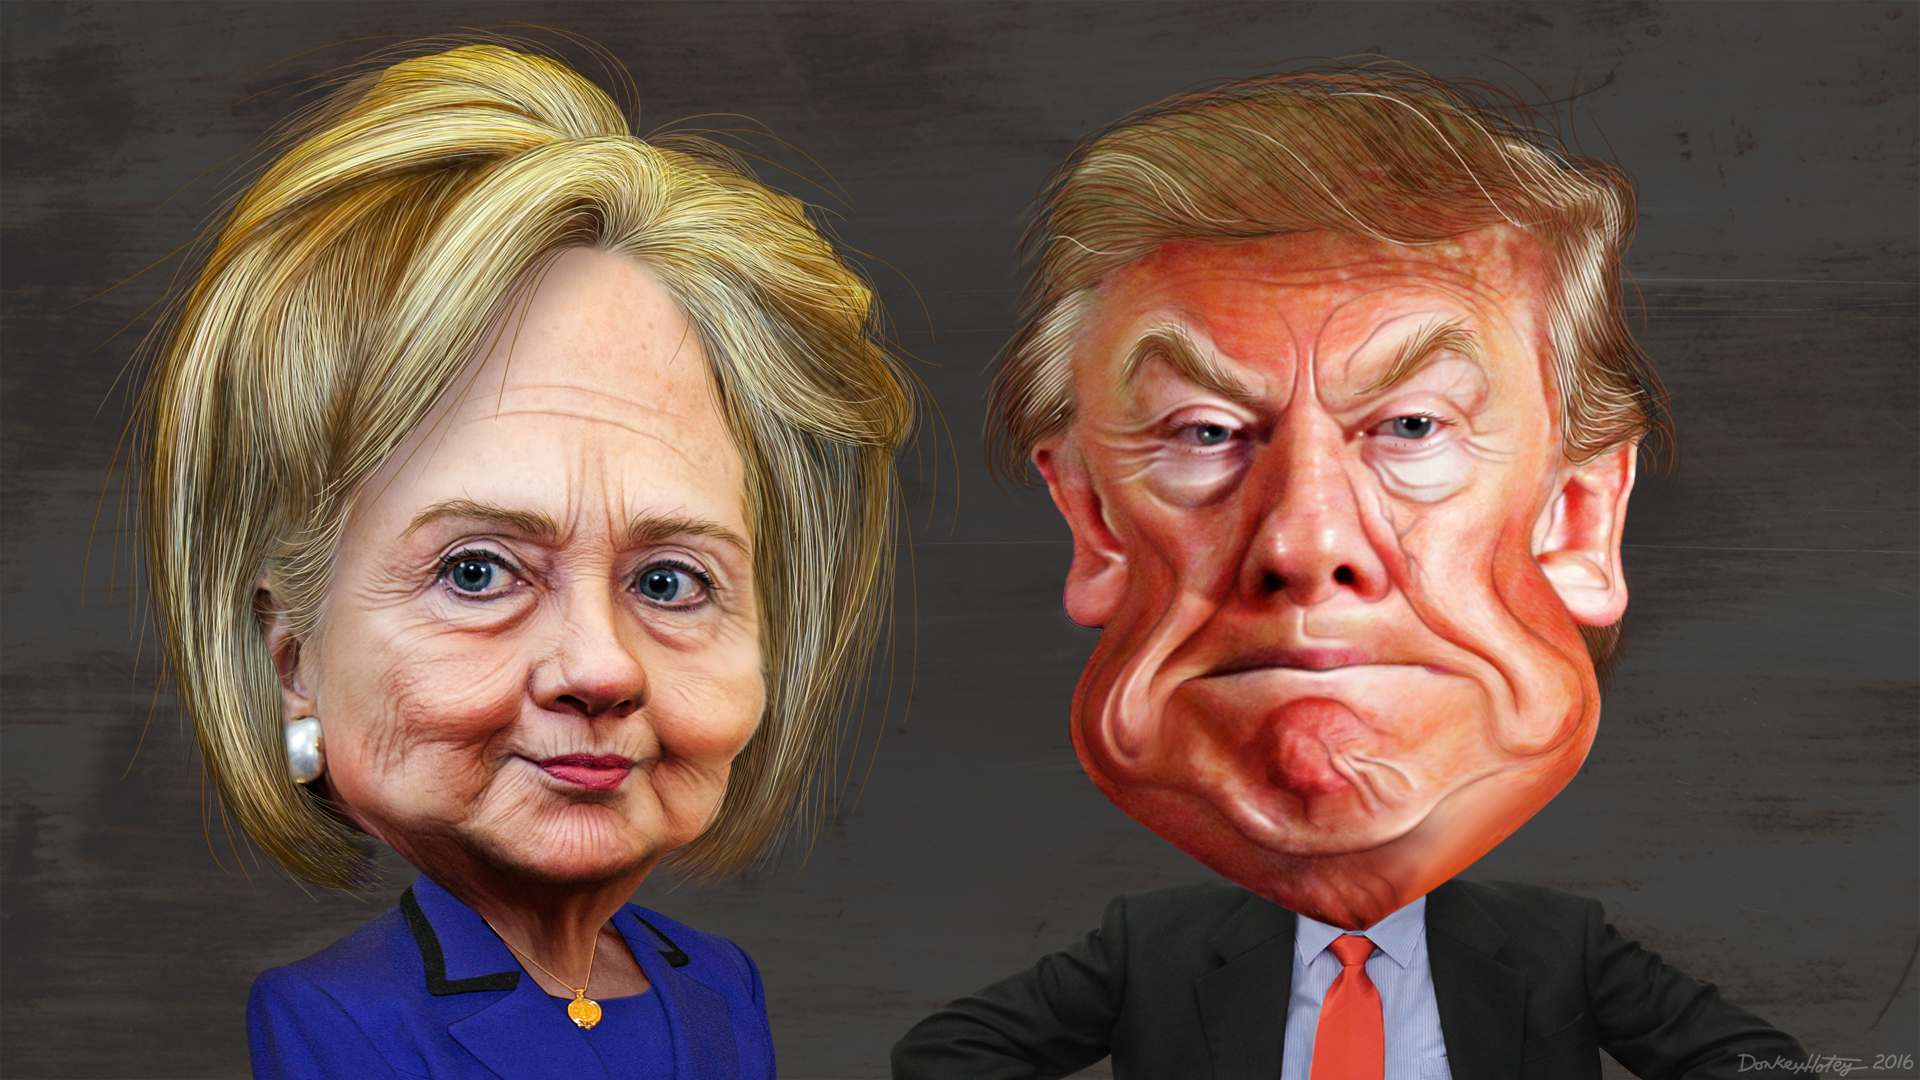 2016 us presidential election Donald Trump vs Hillary Clinton    Pros and Cons and Winner is...